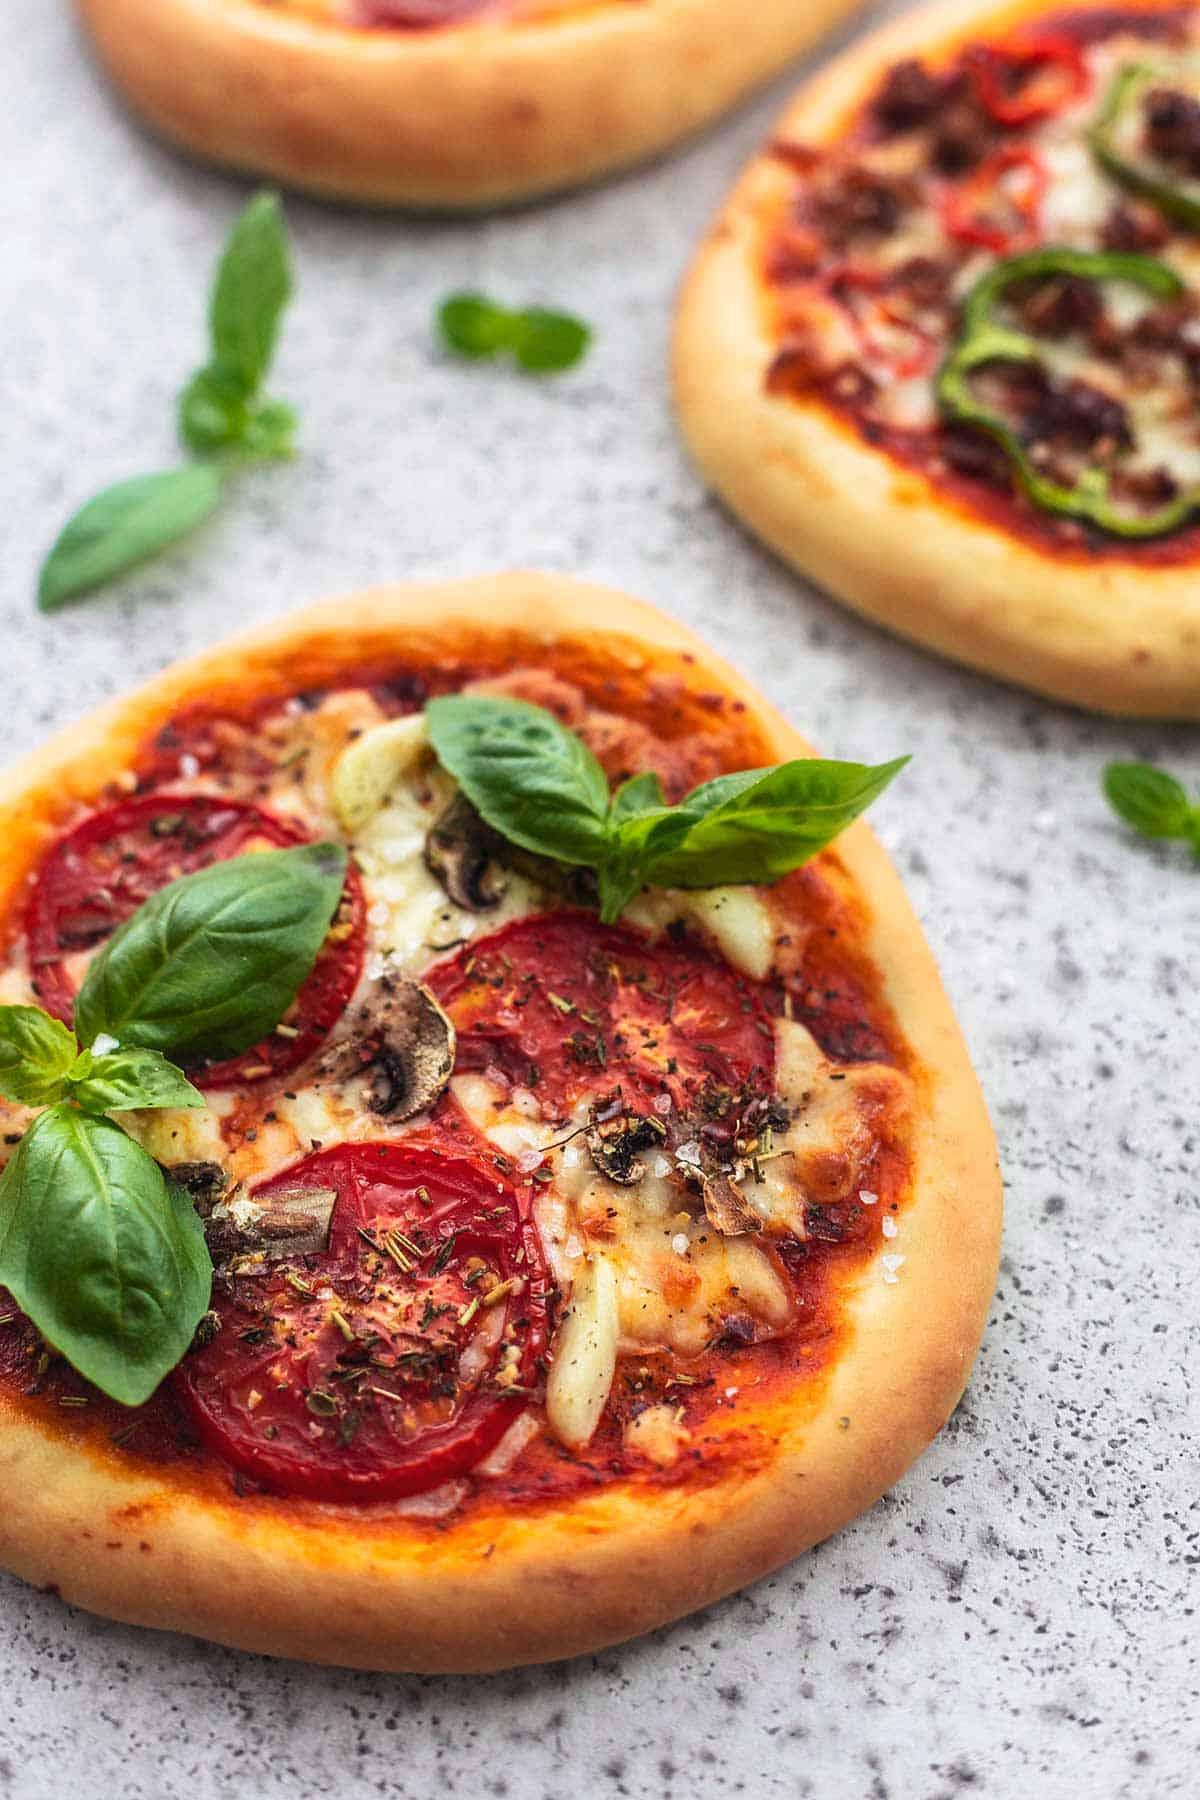 personal pizza with pepperoni and fresh basil